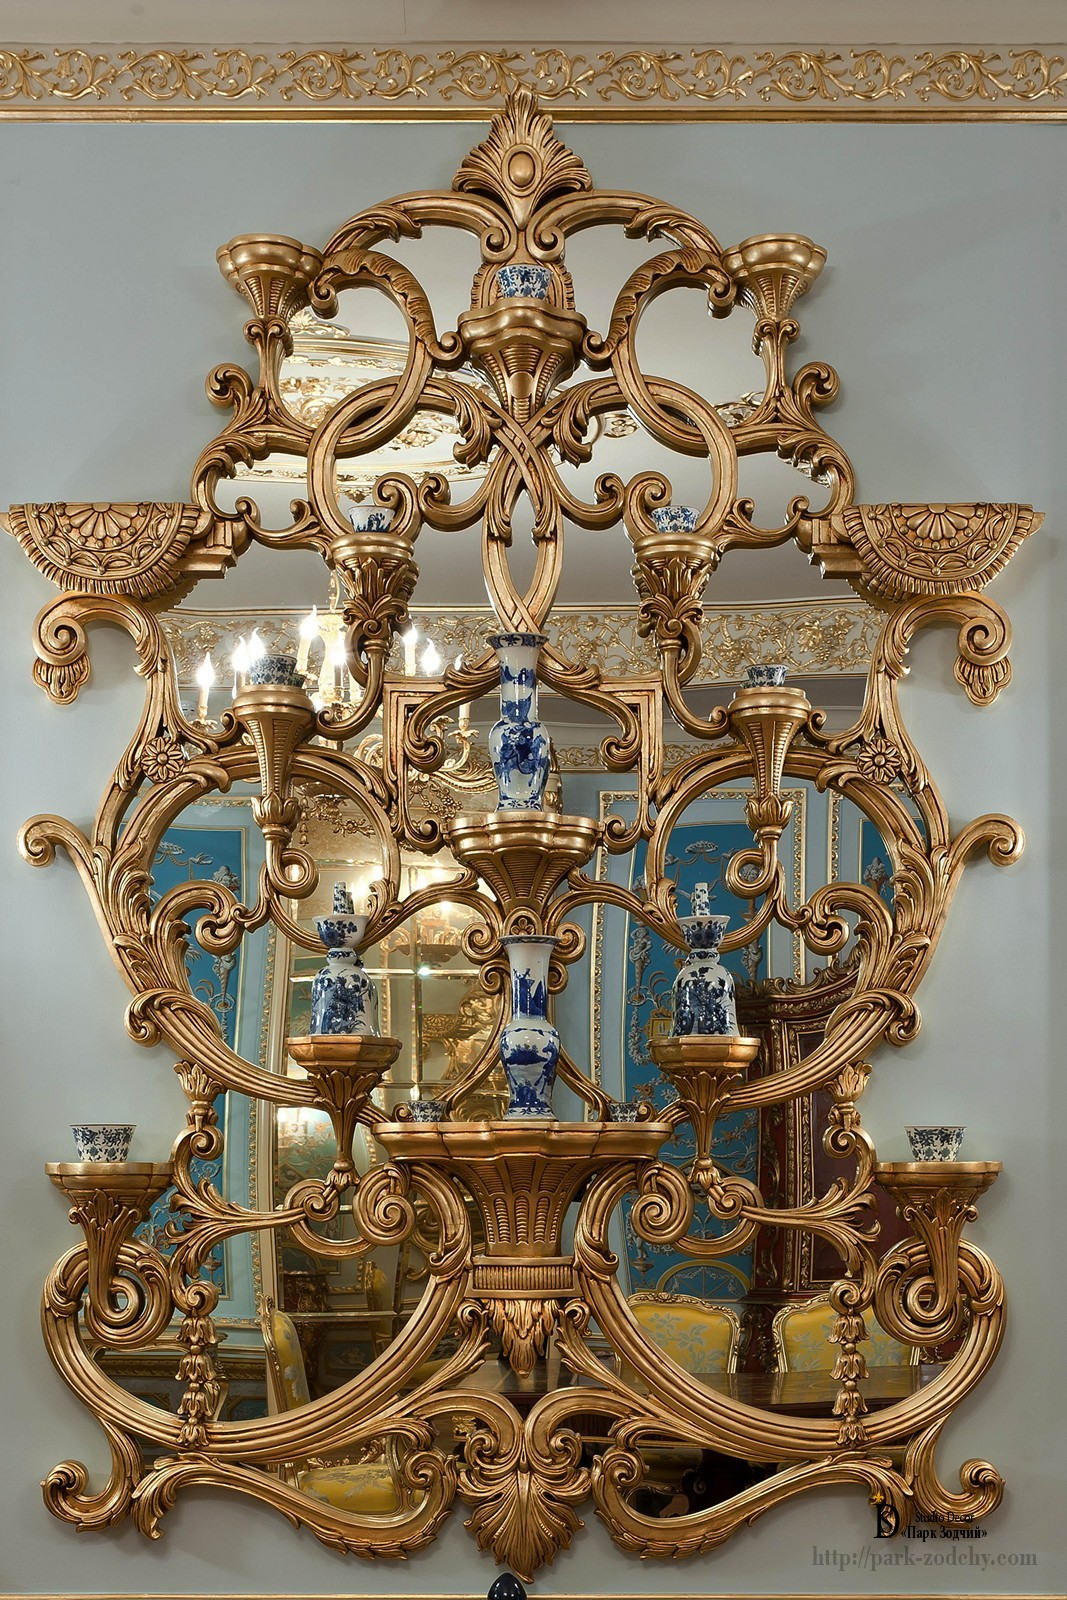 Gilded mirror as decor